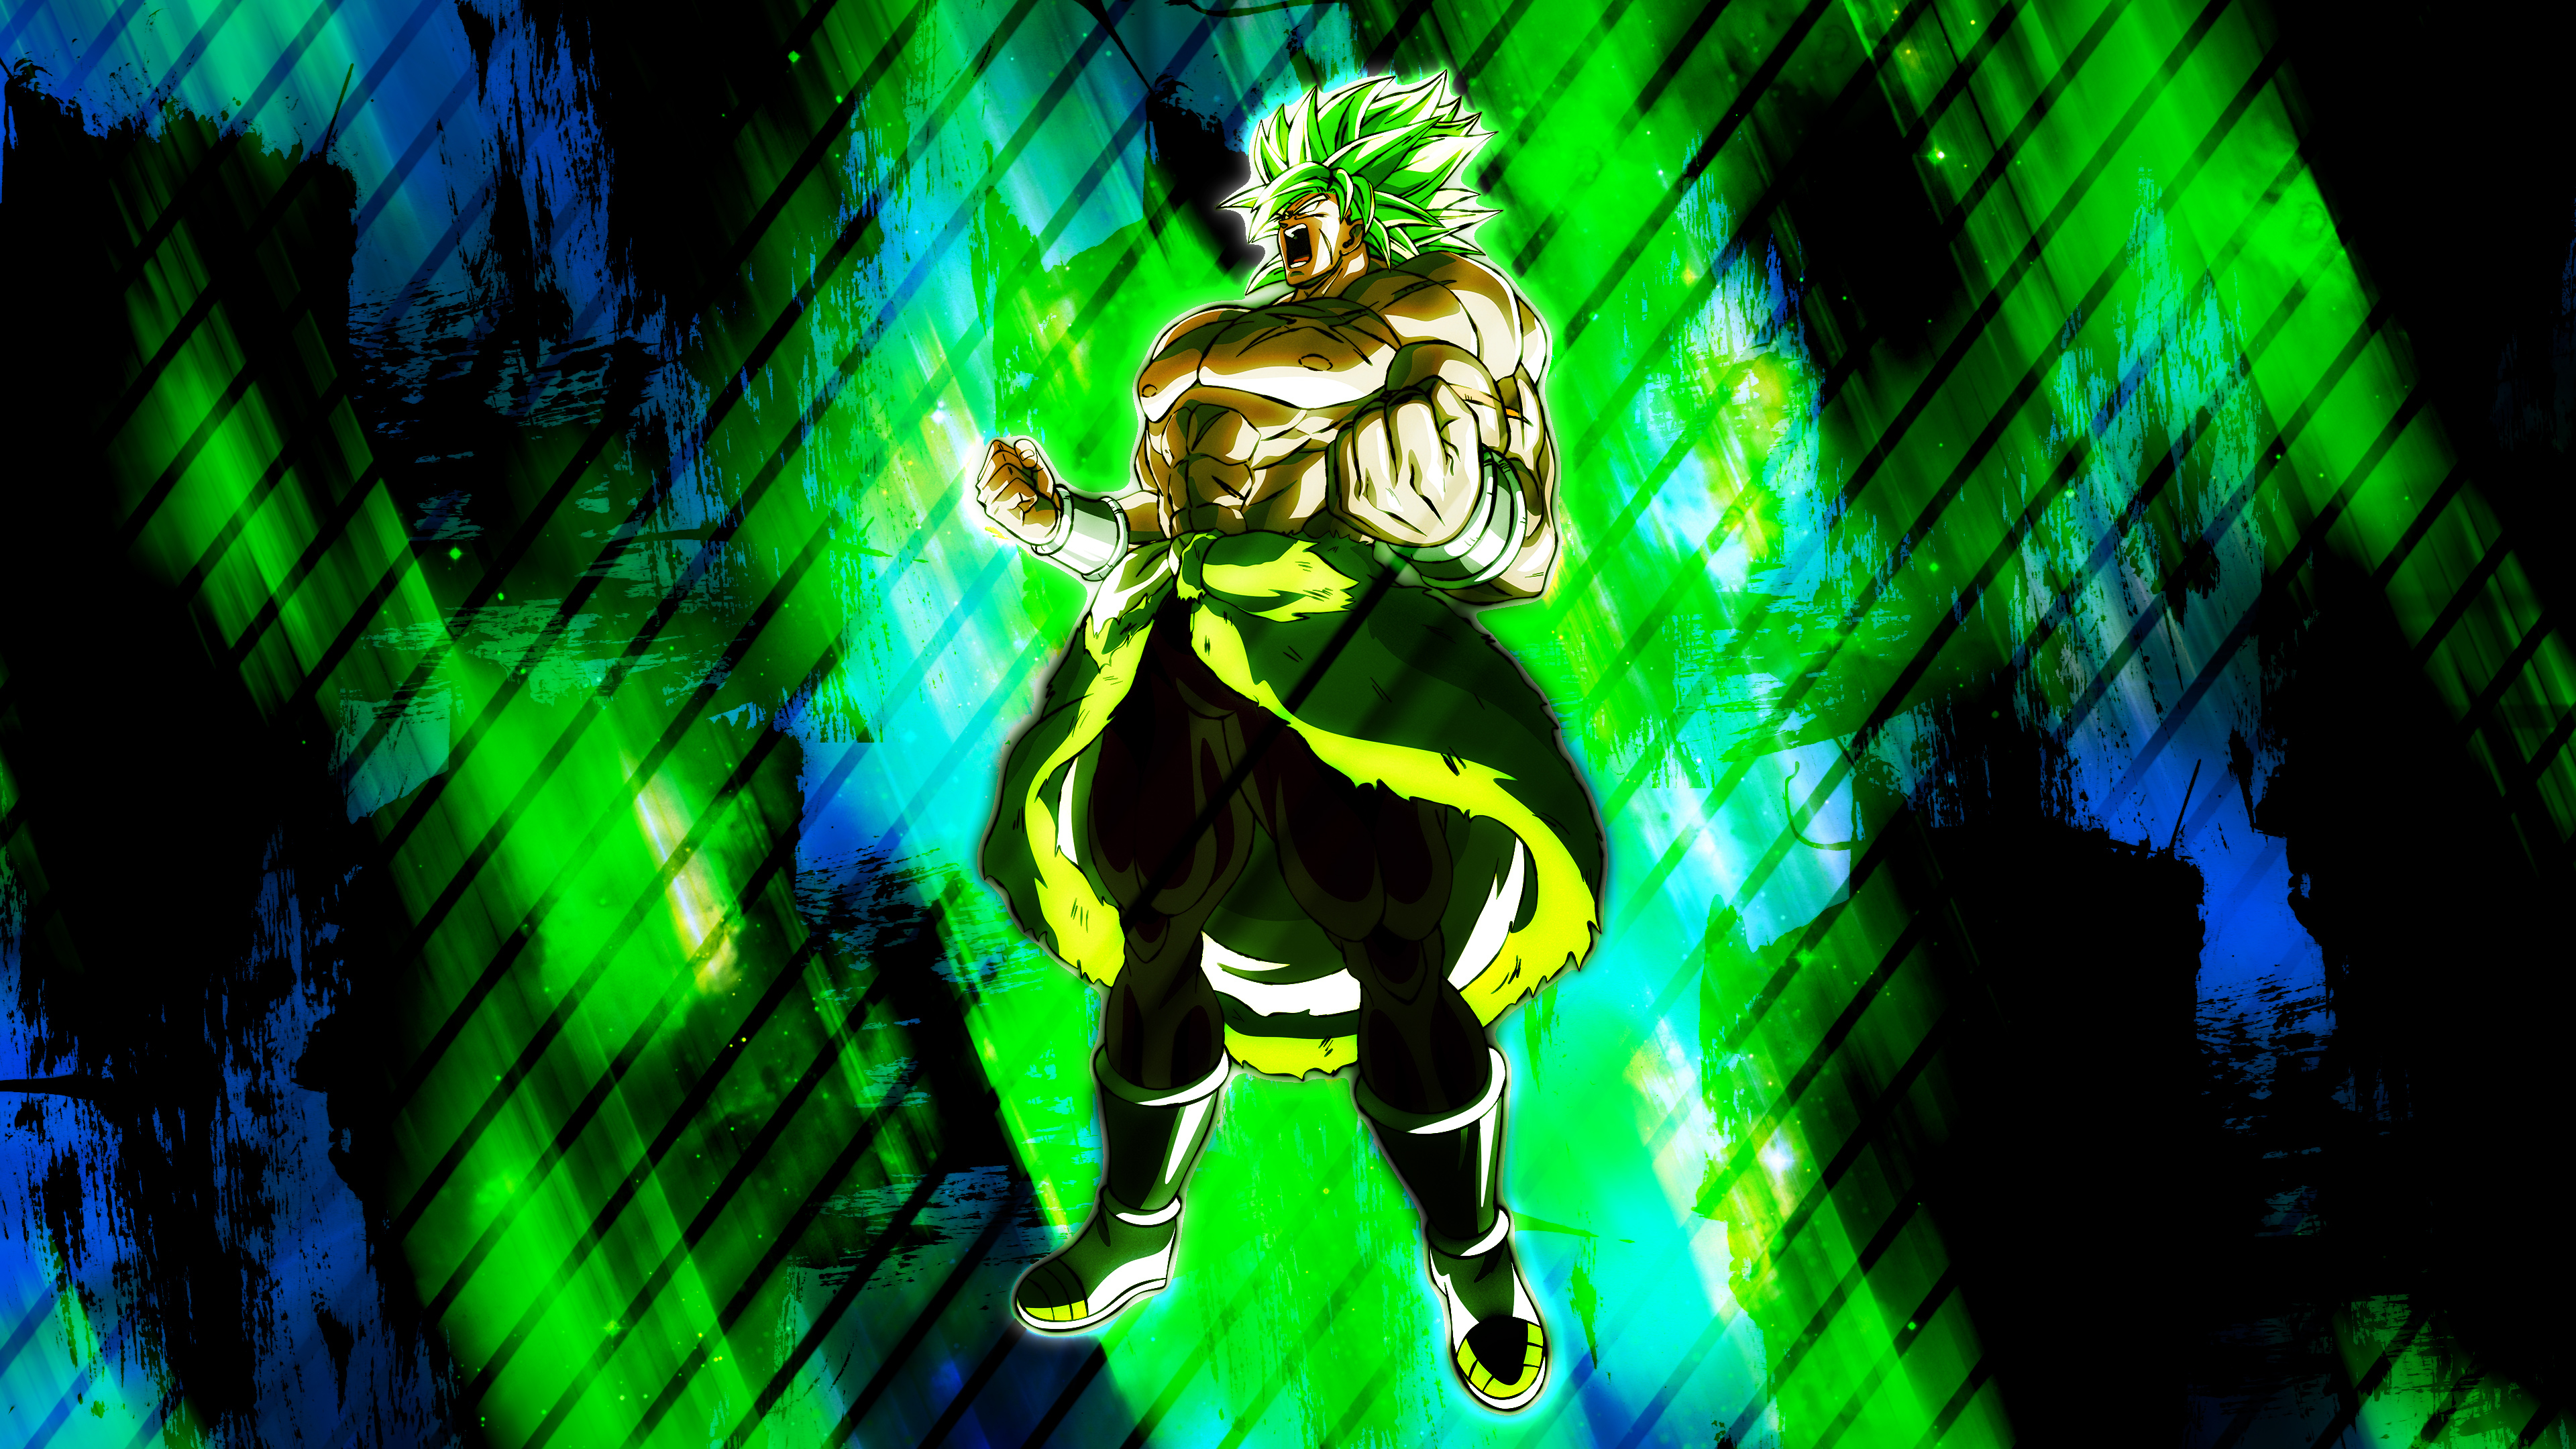 1280x2120 Unstoppable Broly 4k Iphone 6 Plus Wallpaper Hd